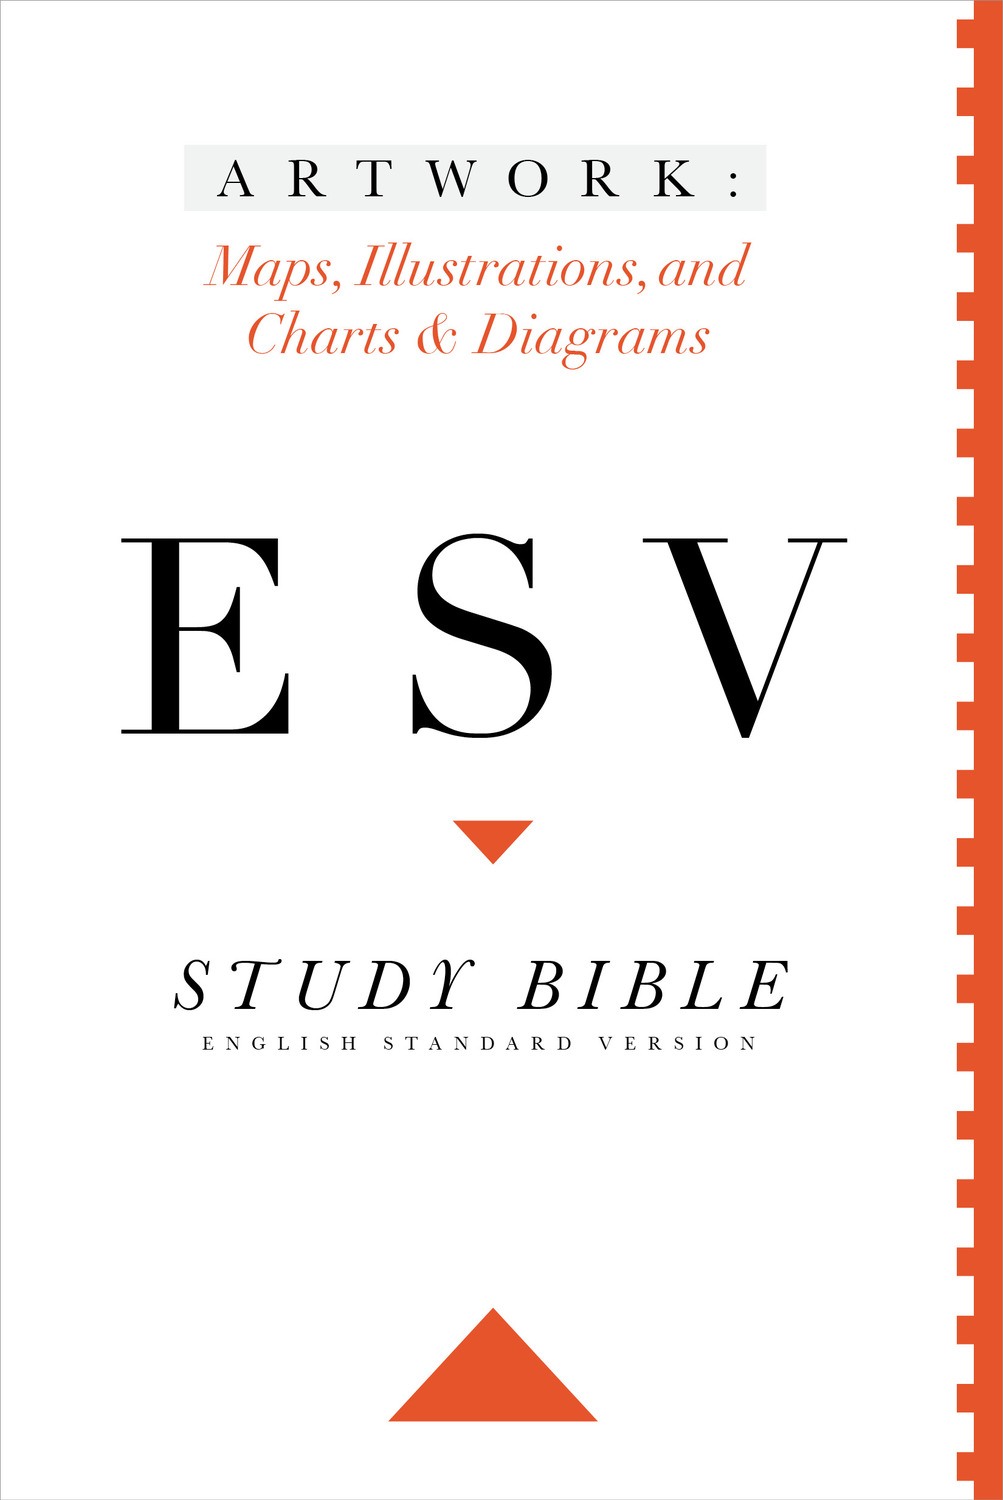 ESV Study Bible Artwork: Maps, Illustrations, and Charts & Diagrams